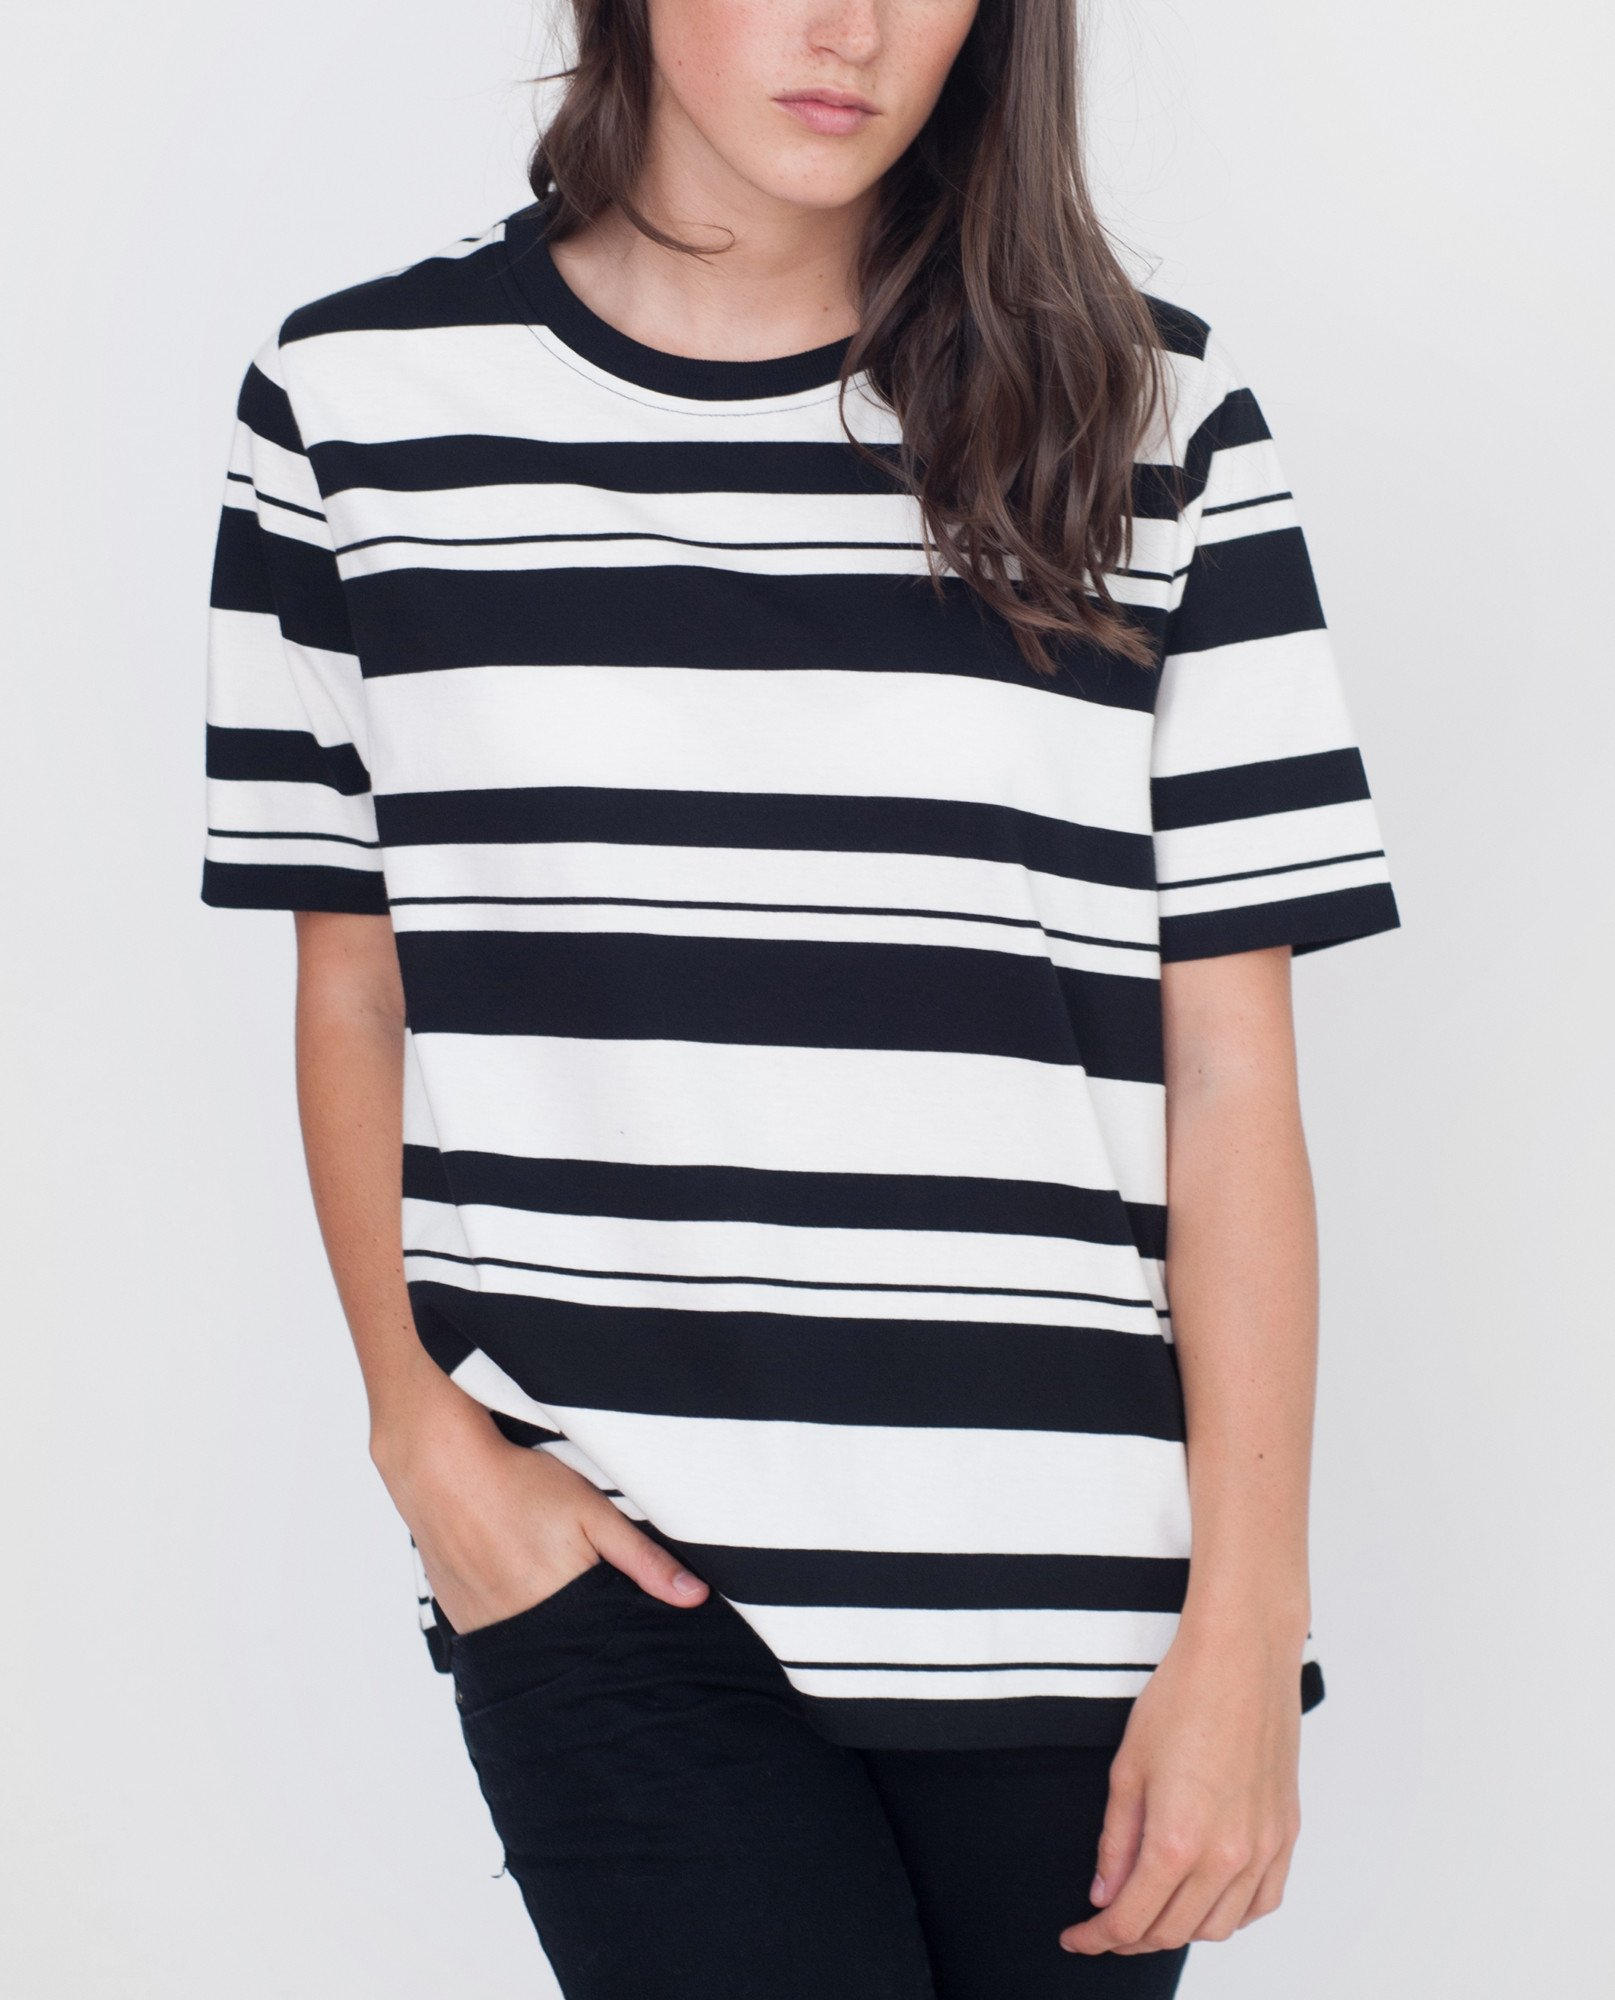 ANNIE Organic Cotton Striped Tshirt from Beaumont Organic